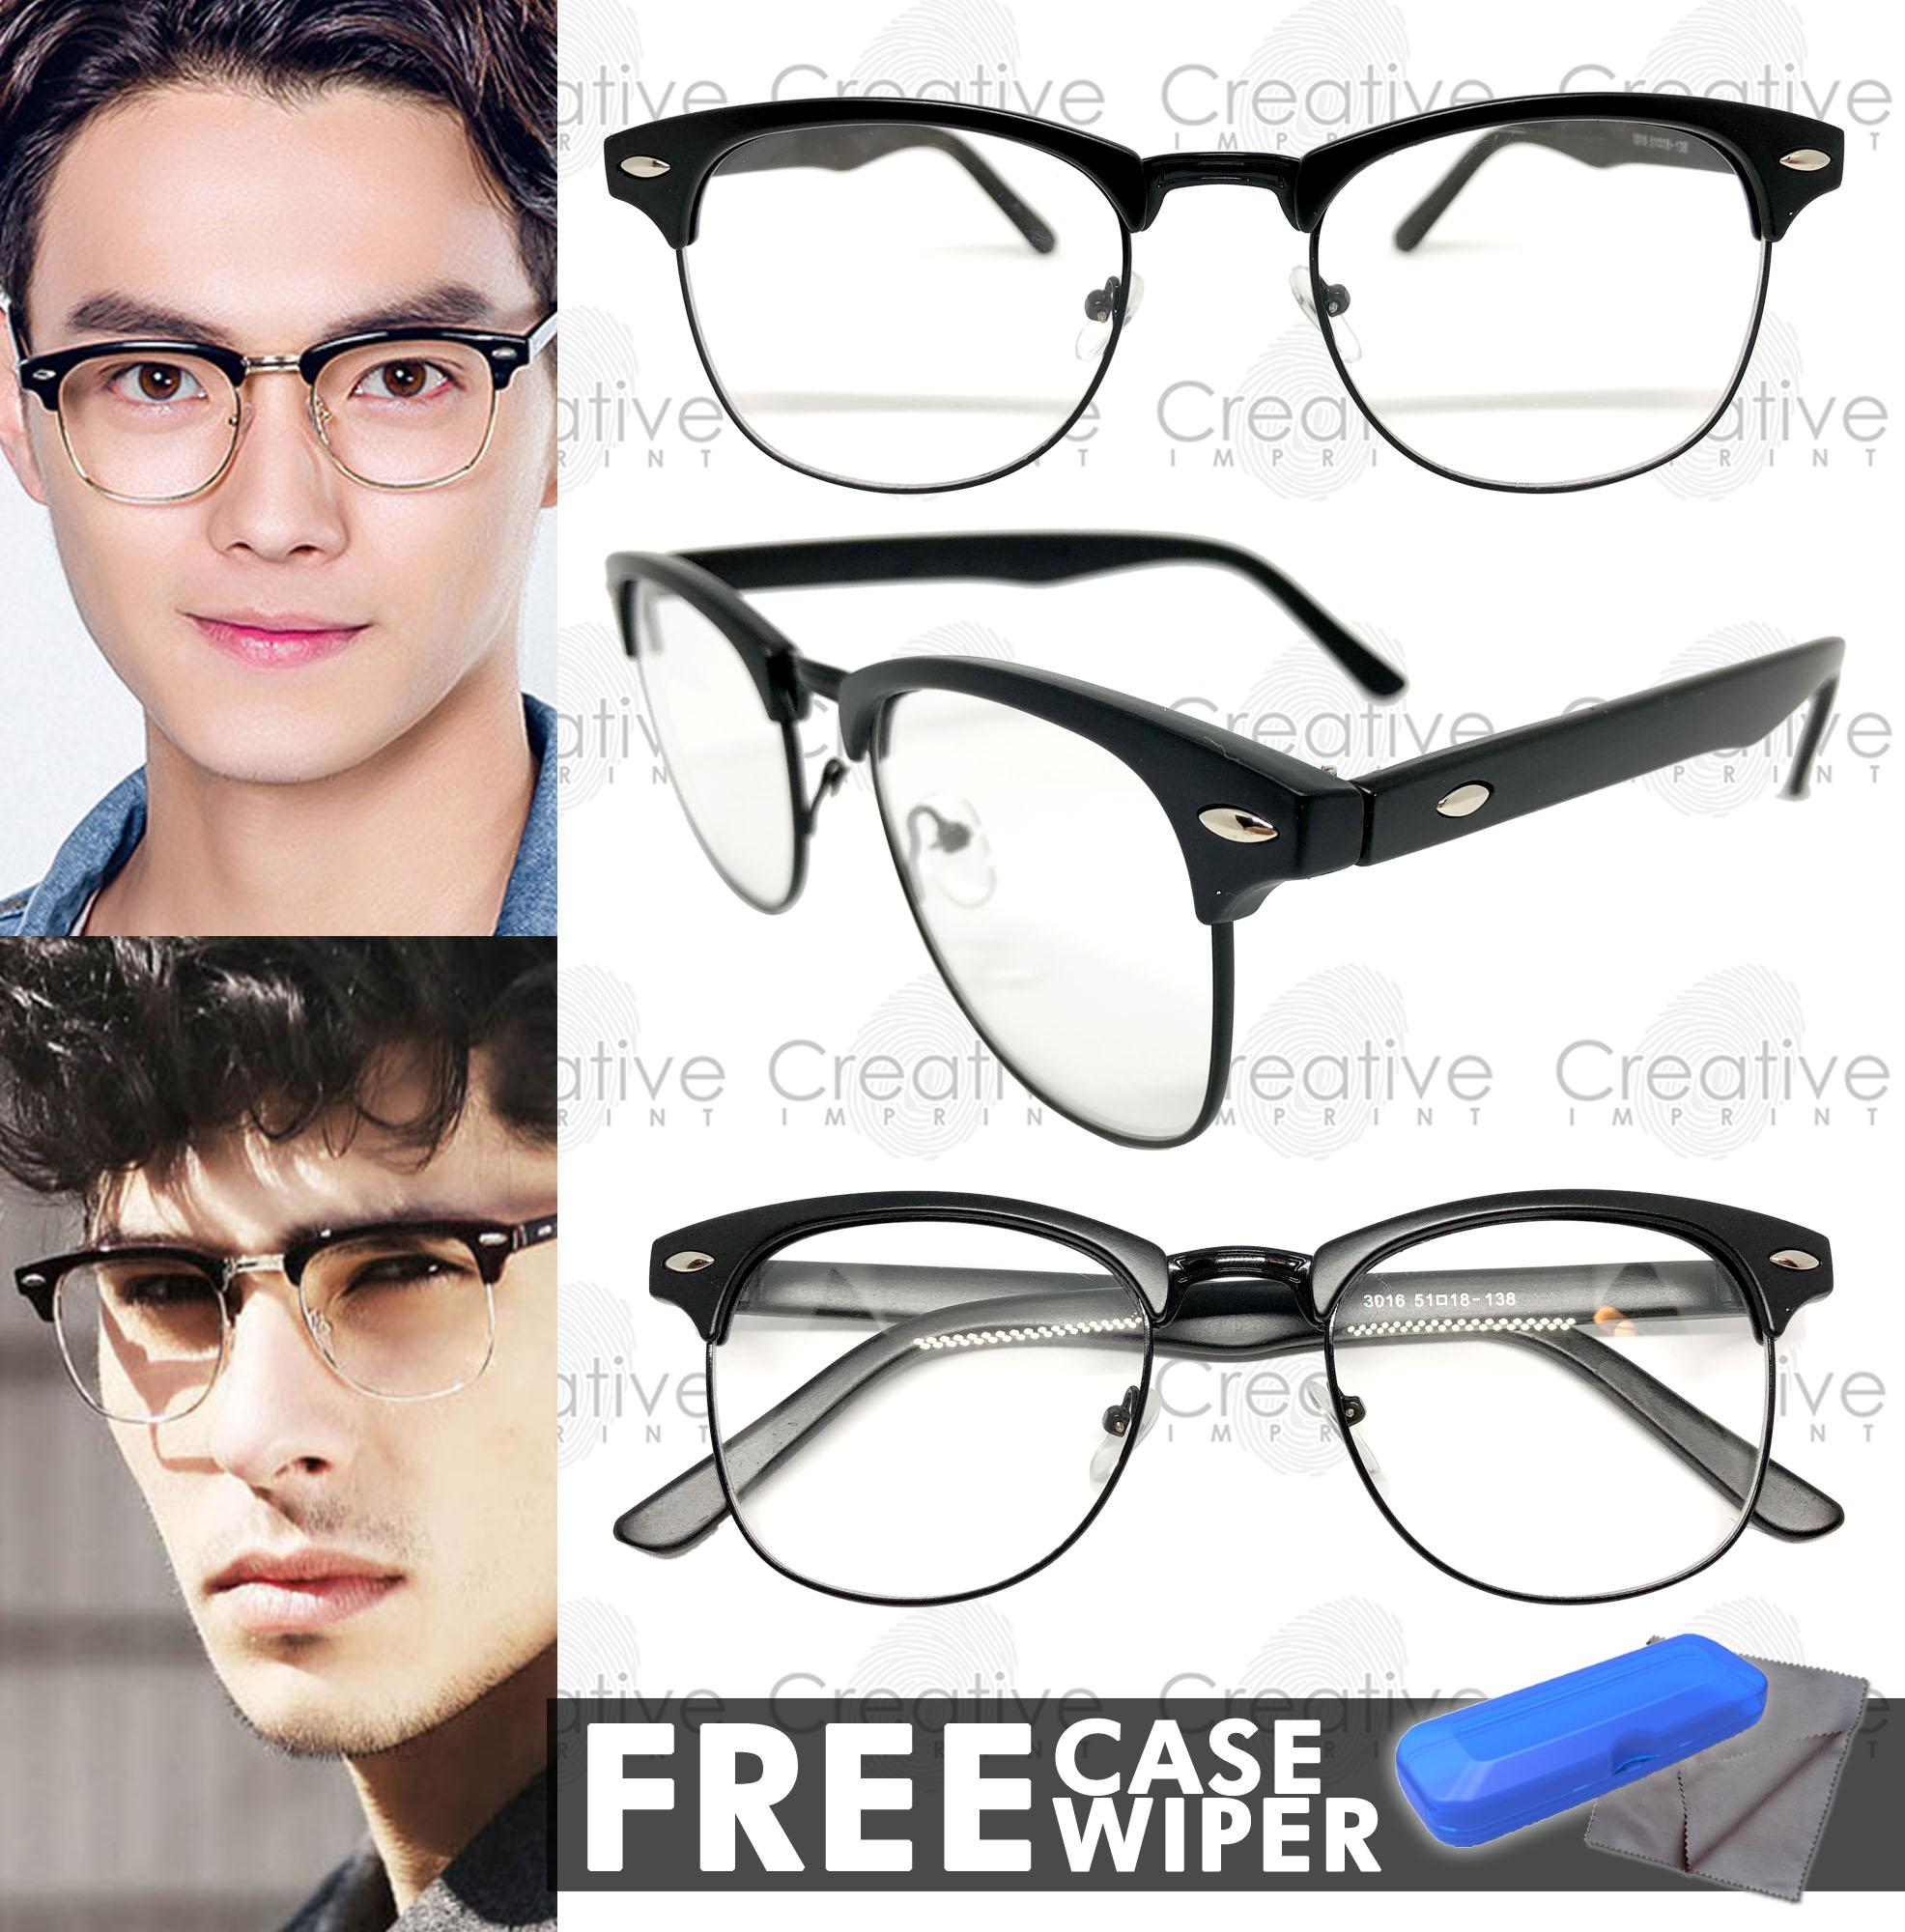 6ffffeae82 Creative Imprint Eyeglasses Replaceable Lens Clubmaster  01 Premium High  Quality Specs Metal Korean Style Computer